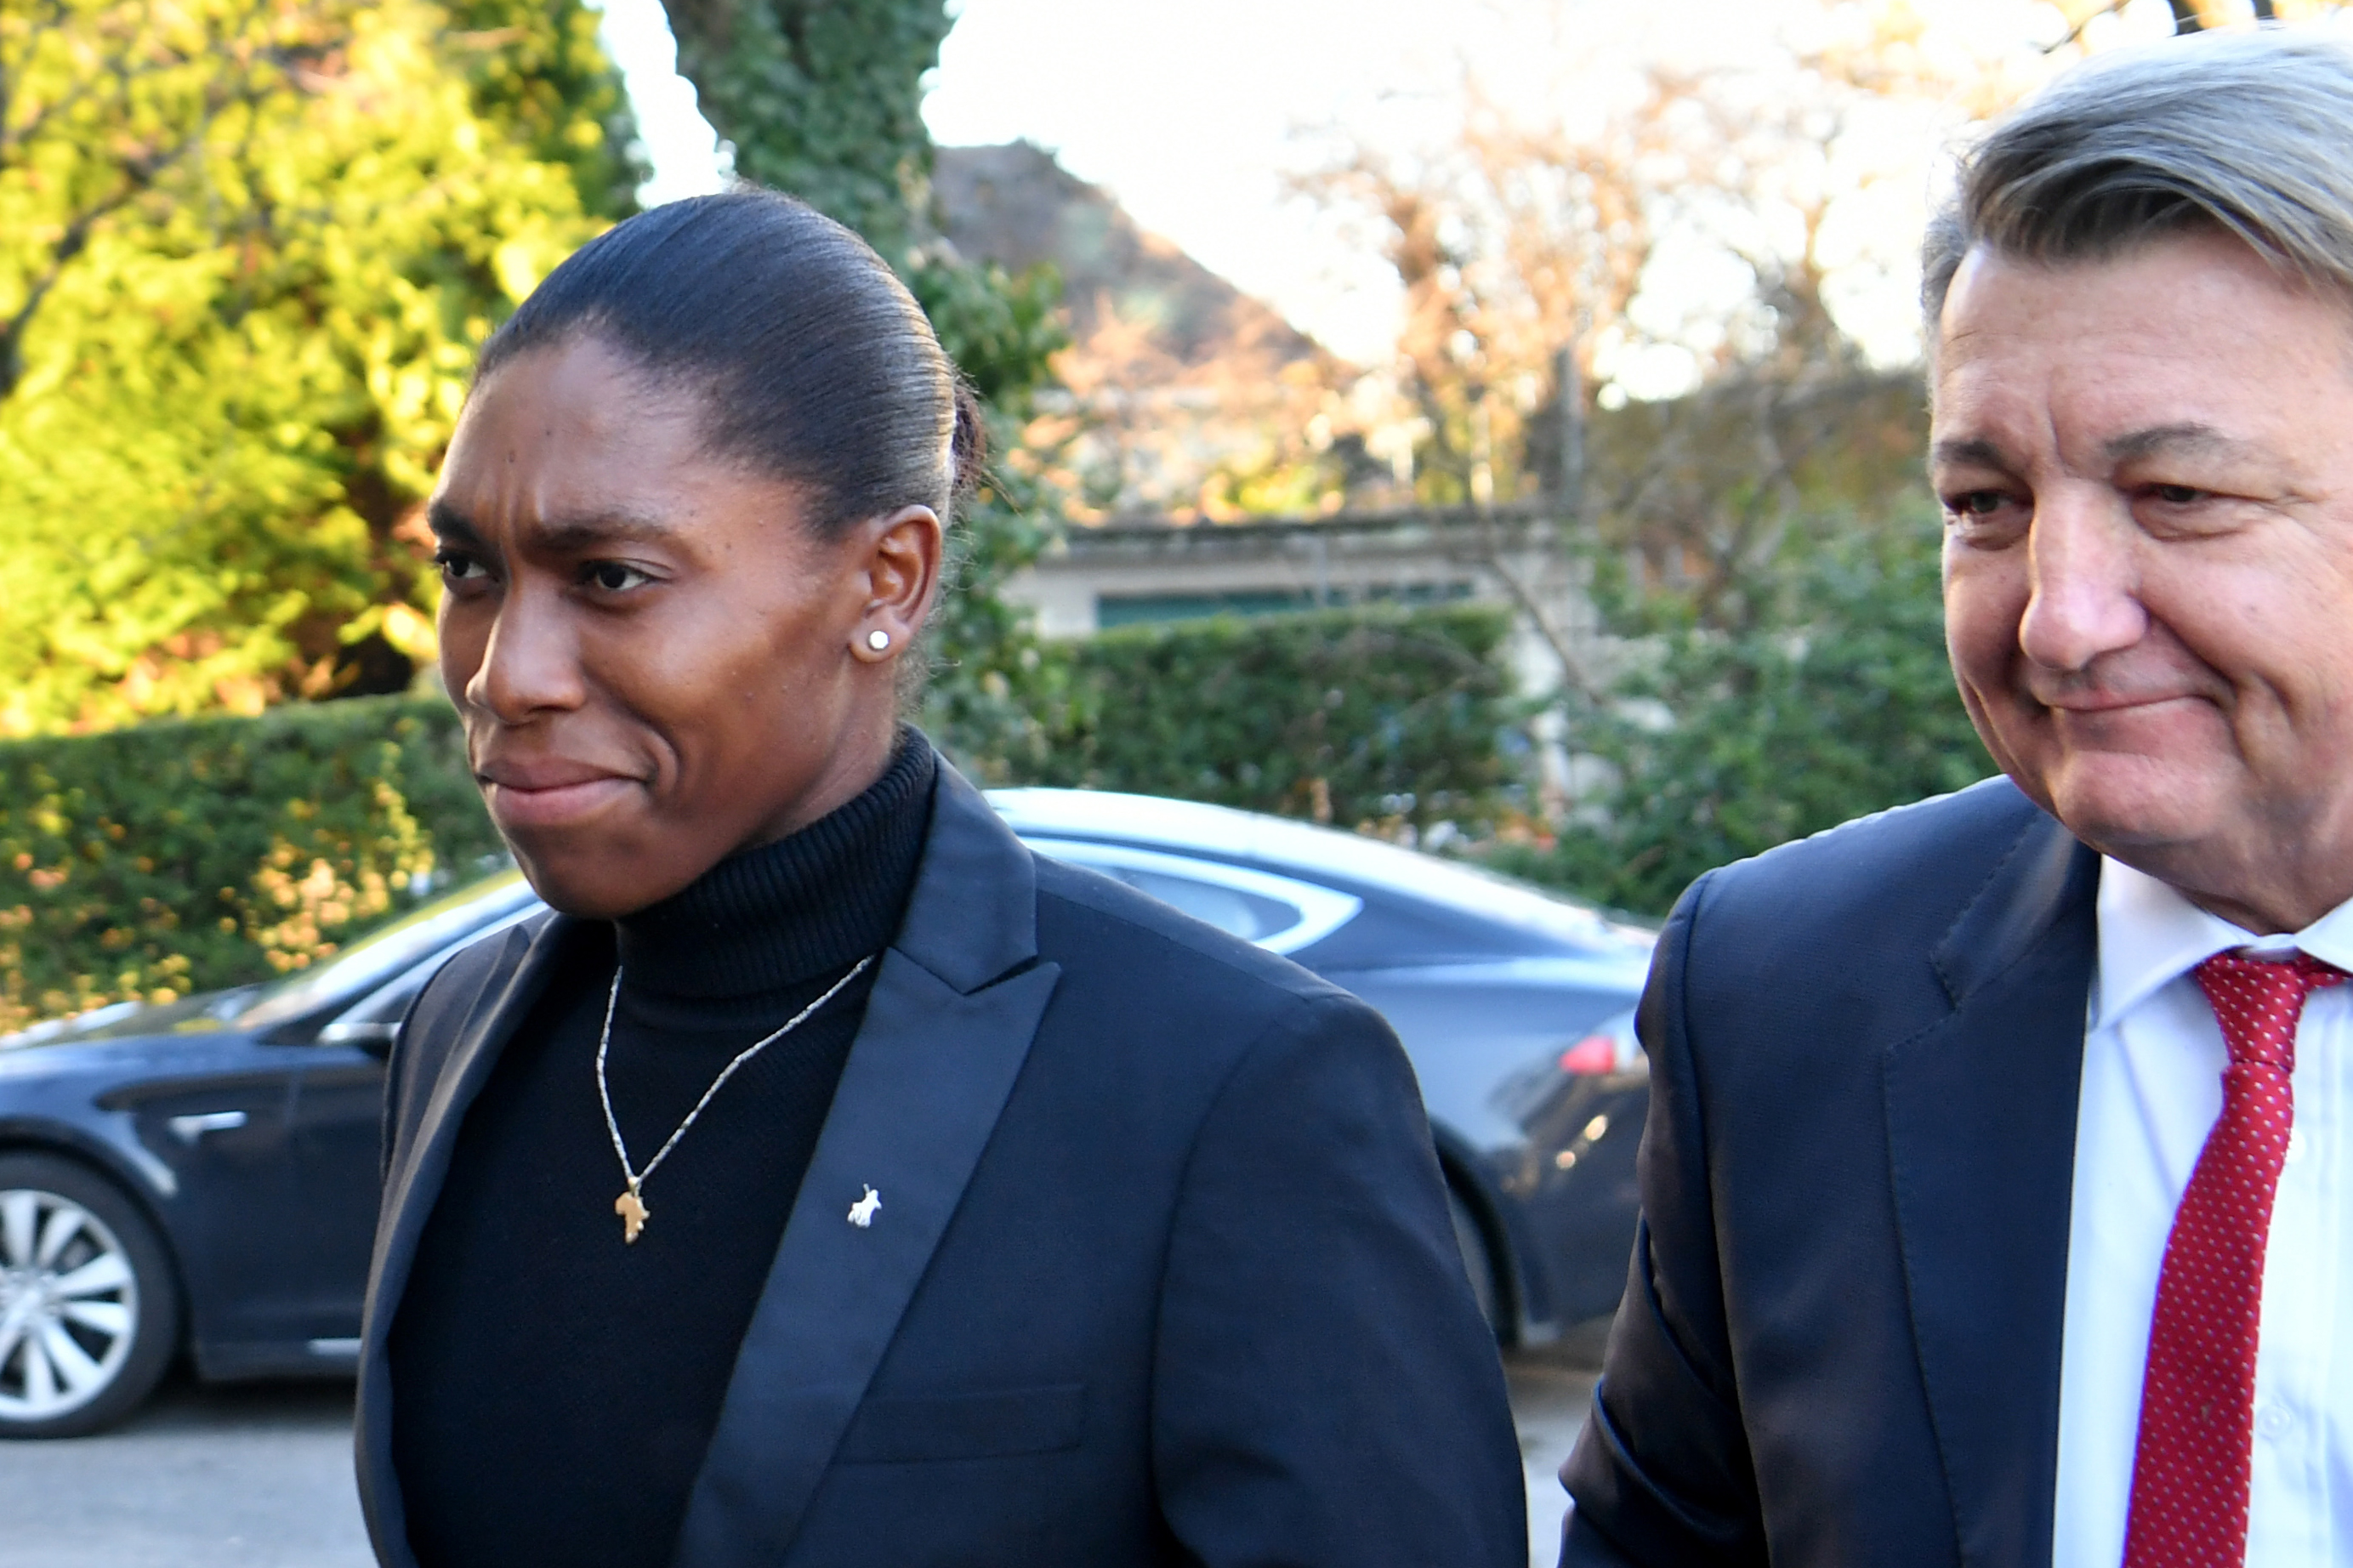 South African 800 meters Olympic champion Caster Semenya (L) and her lawyer Gregory Nott (R) arrive for a landmark hearing at the Court of Arbitration for Sport (CAS) in Lausanne on February 18, 2019.